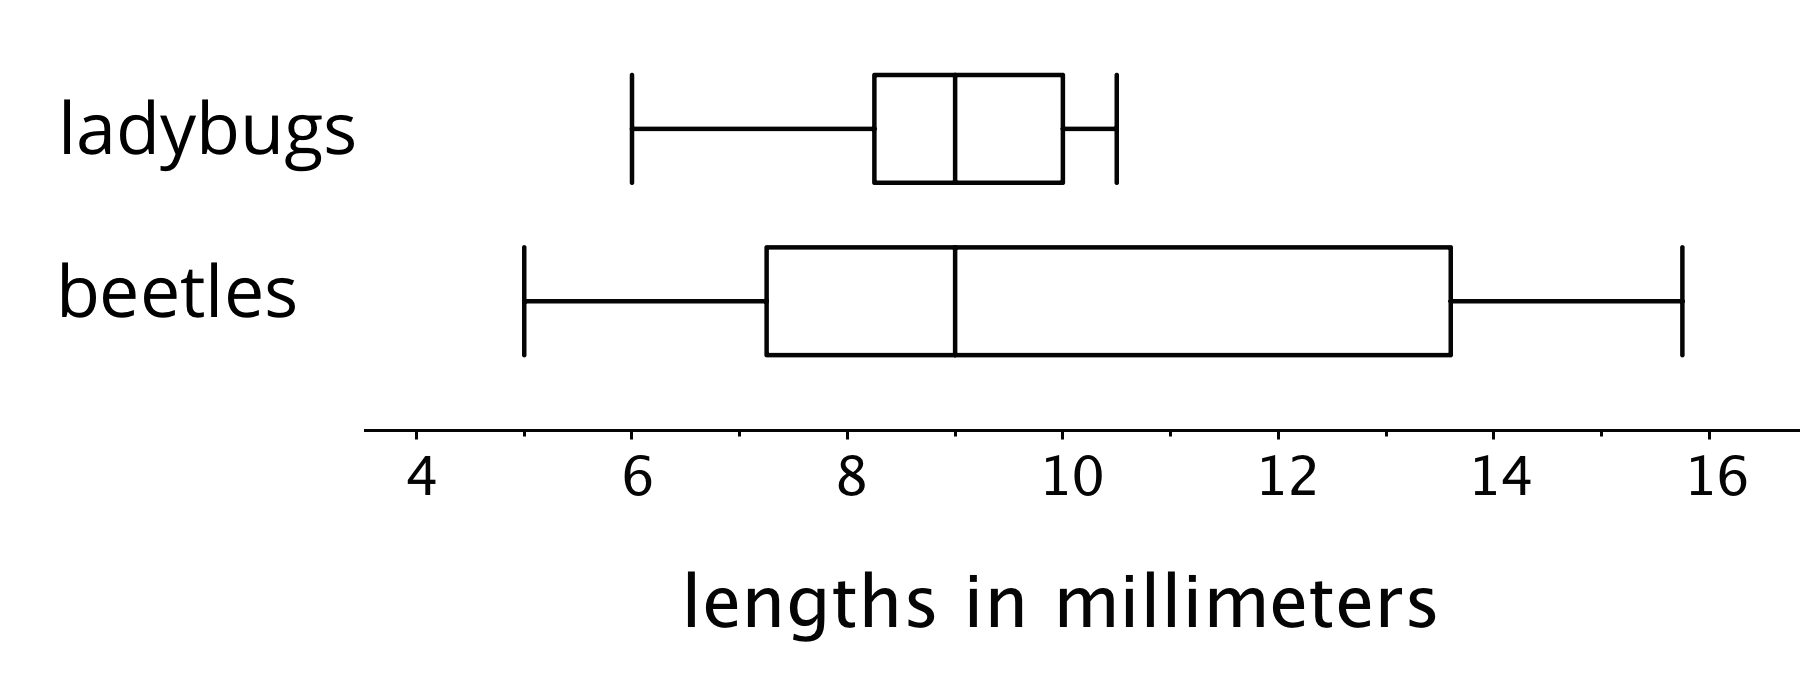 "Two sets of box plots for ""lengths in millimeters"". The numbers 4 through 16 are indicated in increments of 2. There are tick marks midway between the indicated numbers. The top box plot is for ""ladybugs"".  The five-number summary is as follows: Minimum value, 6. Maximum value, 10.5. Q1, 8.5. Q2, 9. Q3, 10. The bottom box plot is for ""beetles"".  The five-number summary is as follows: Minimum value, 5. Maximum value, 15.5. Q1, 7.5. Q2, 9. Q3, 13.5."